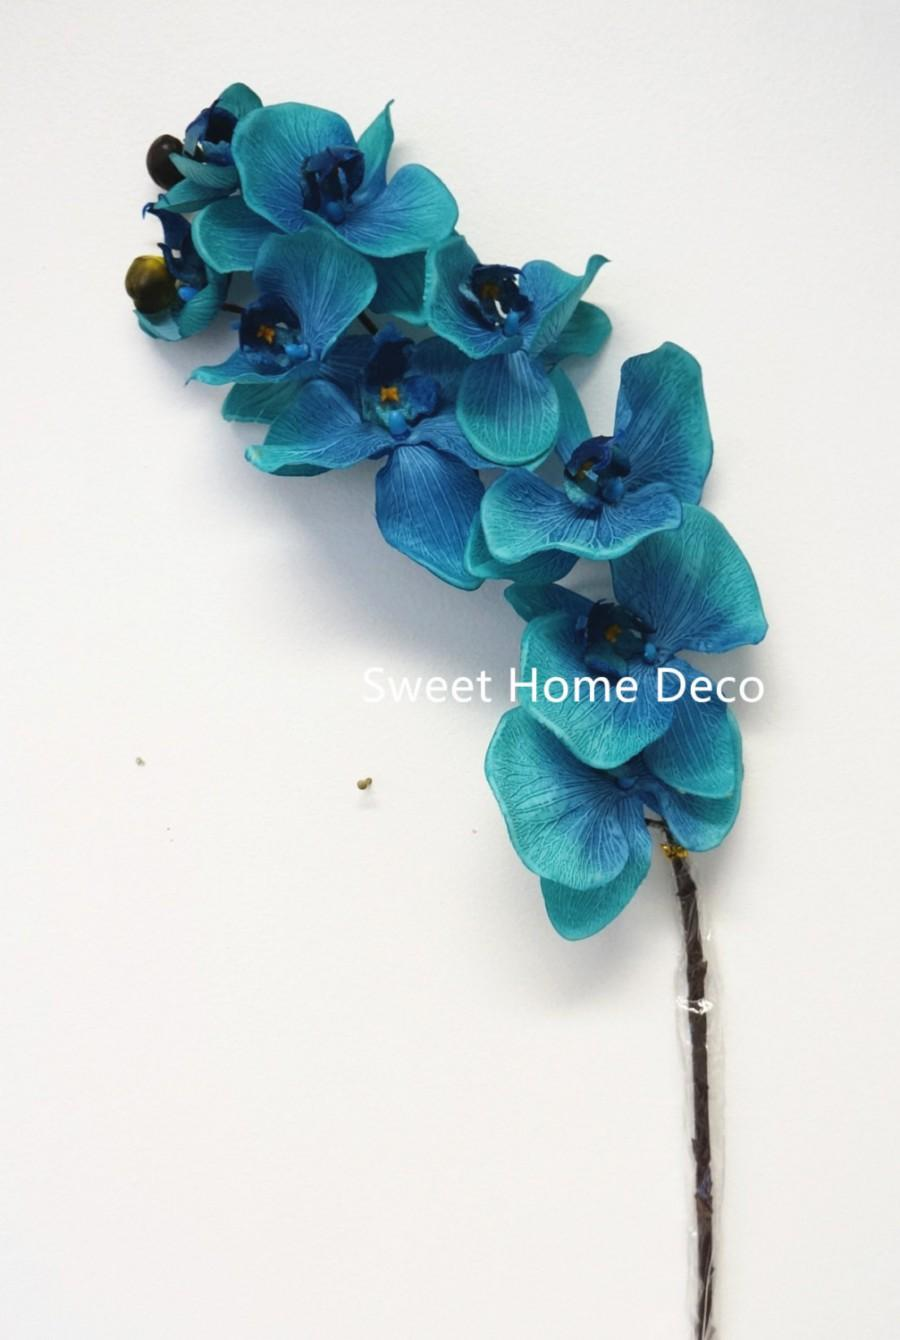 Mariage - JennysFlowerShop 38'' Flannel Phanaenopsis Orchid Silk Artificial Spray (10 Flower Heads) in 7 Beautiful Colors Blue